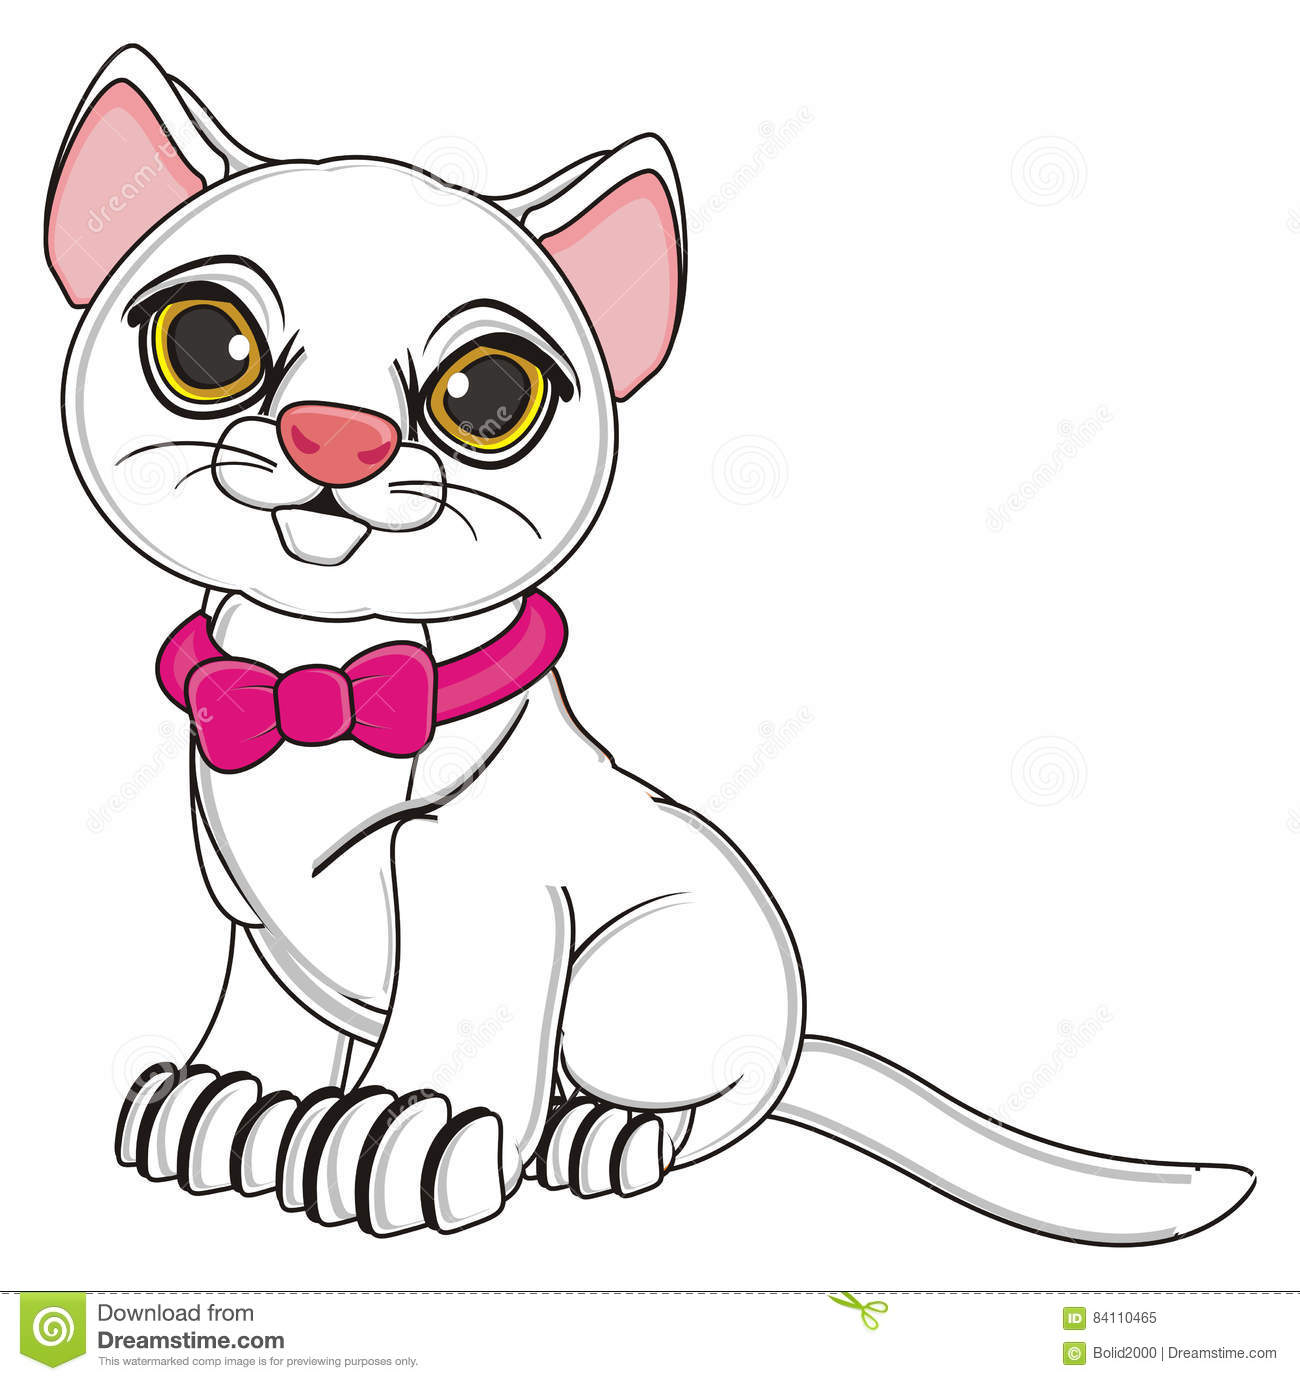 White cat with pink collar with bow sit